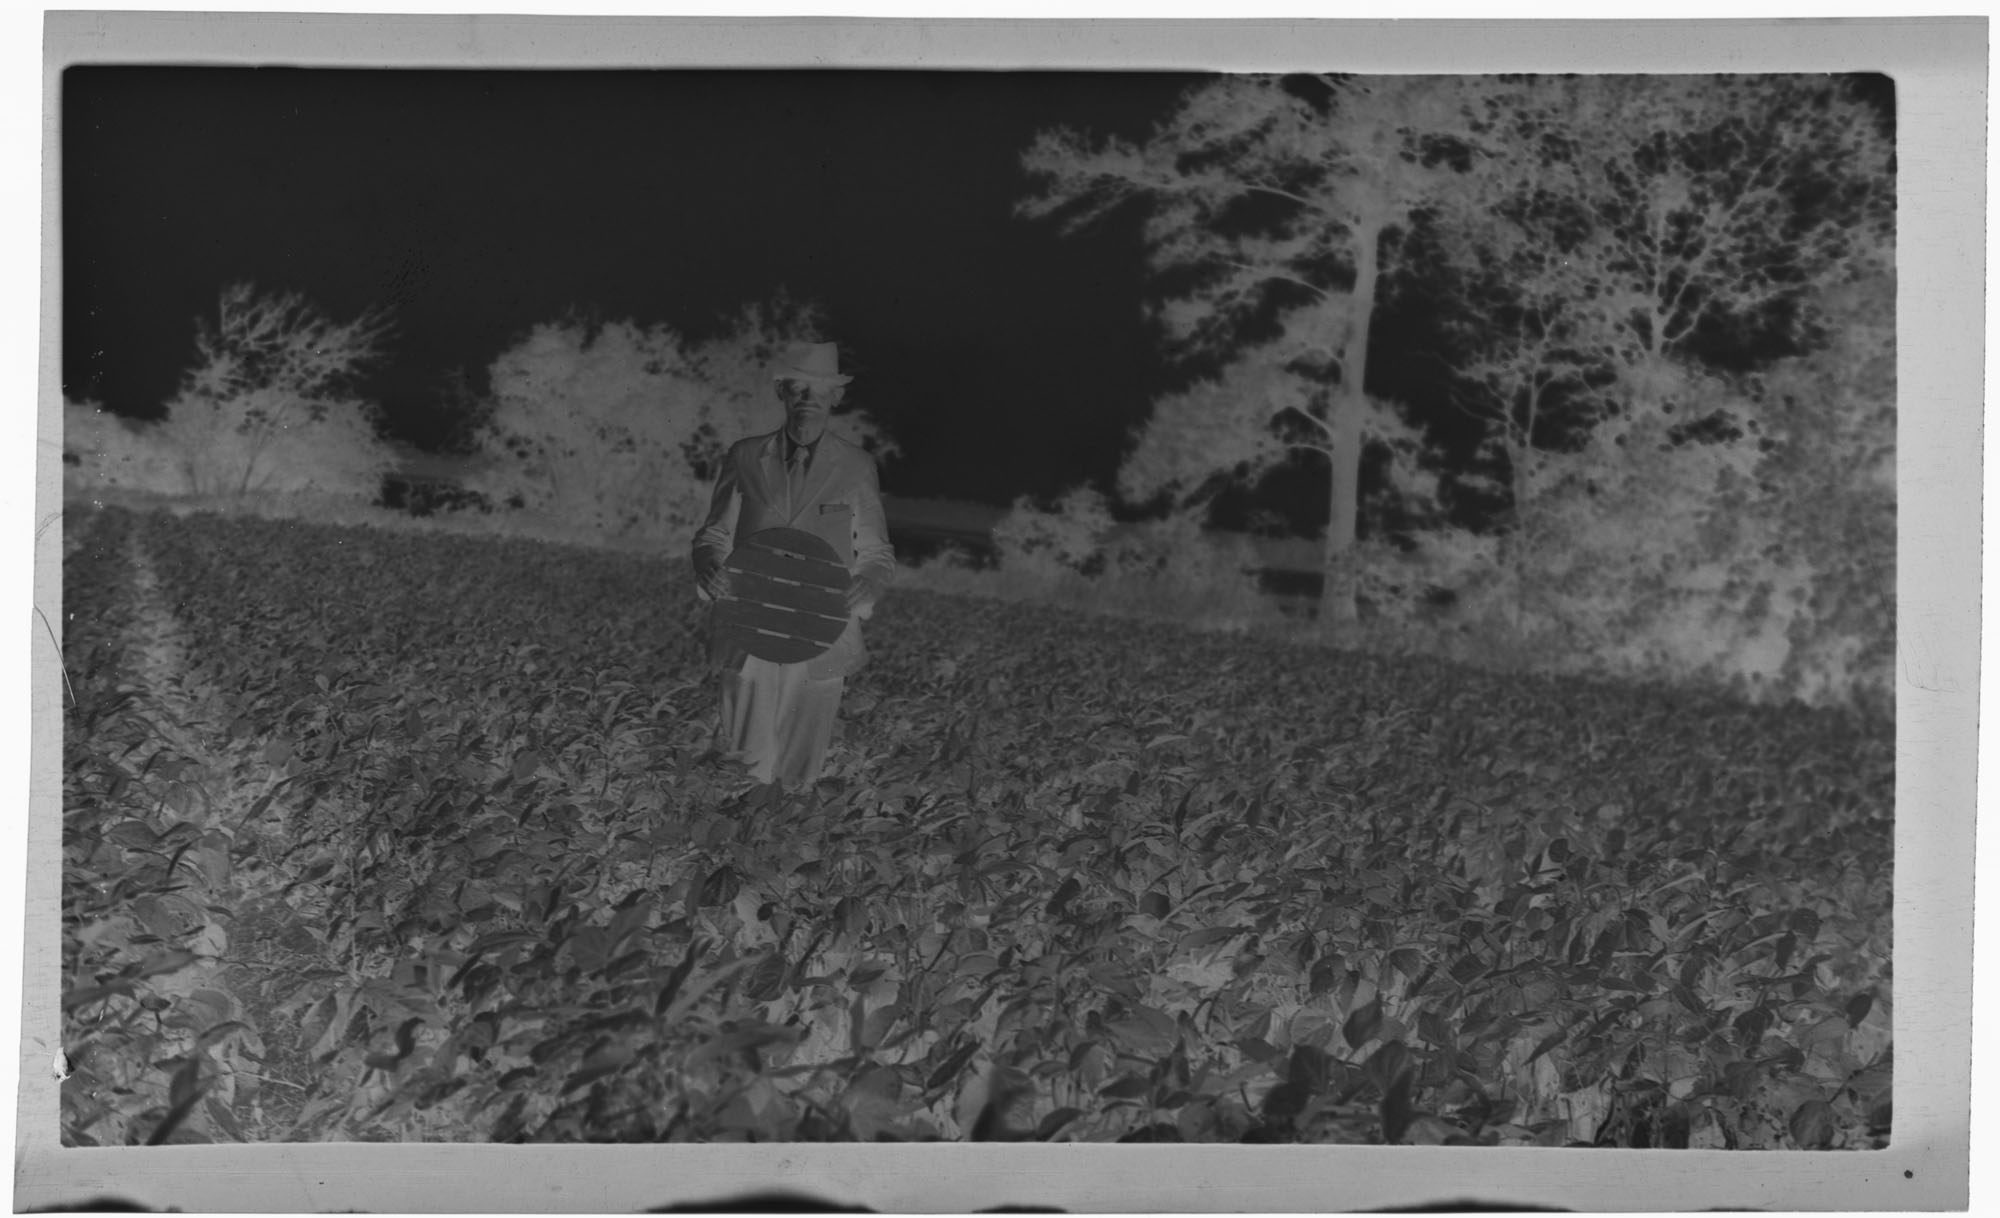 Negative of J.C. Seabrook with Snap Beans